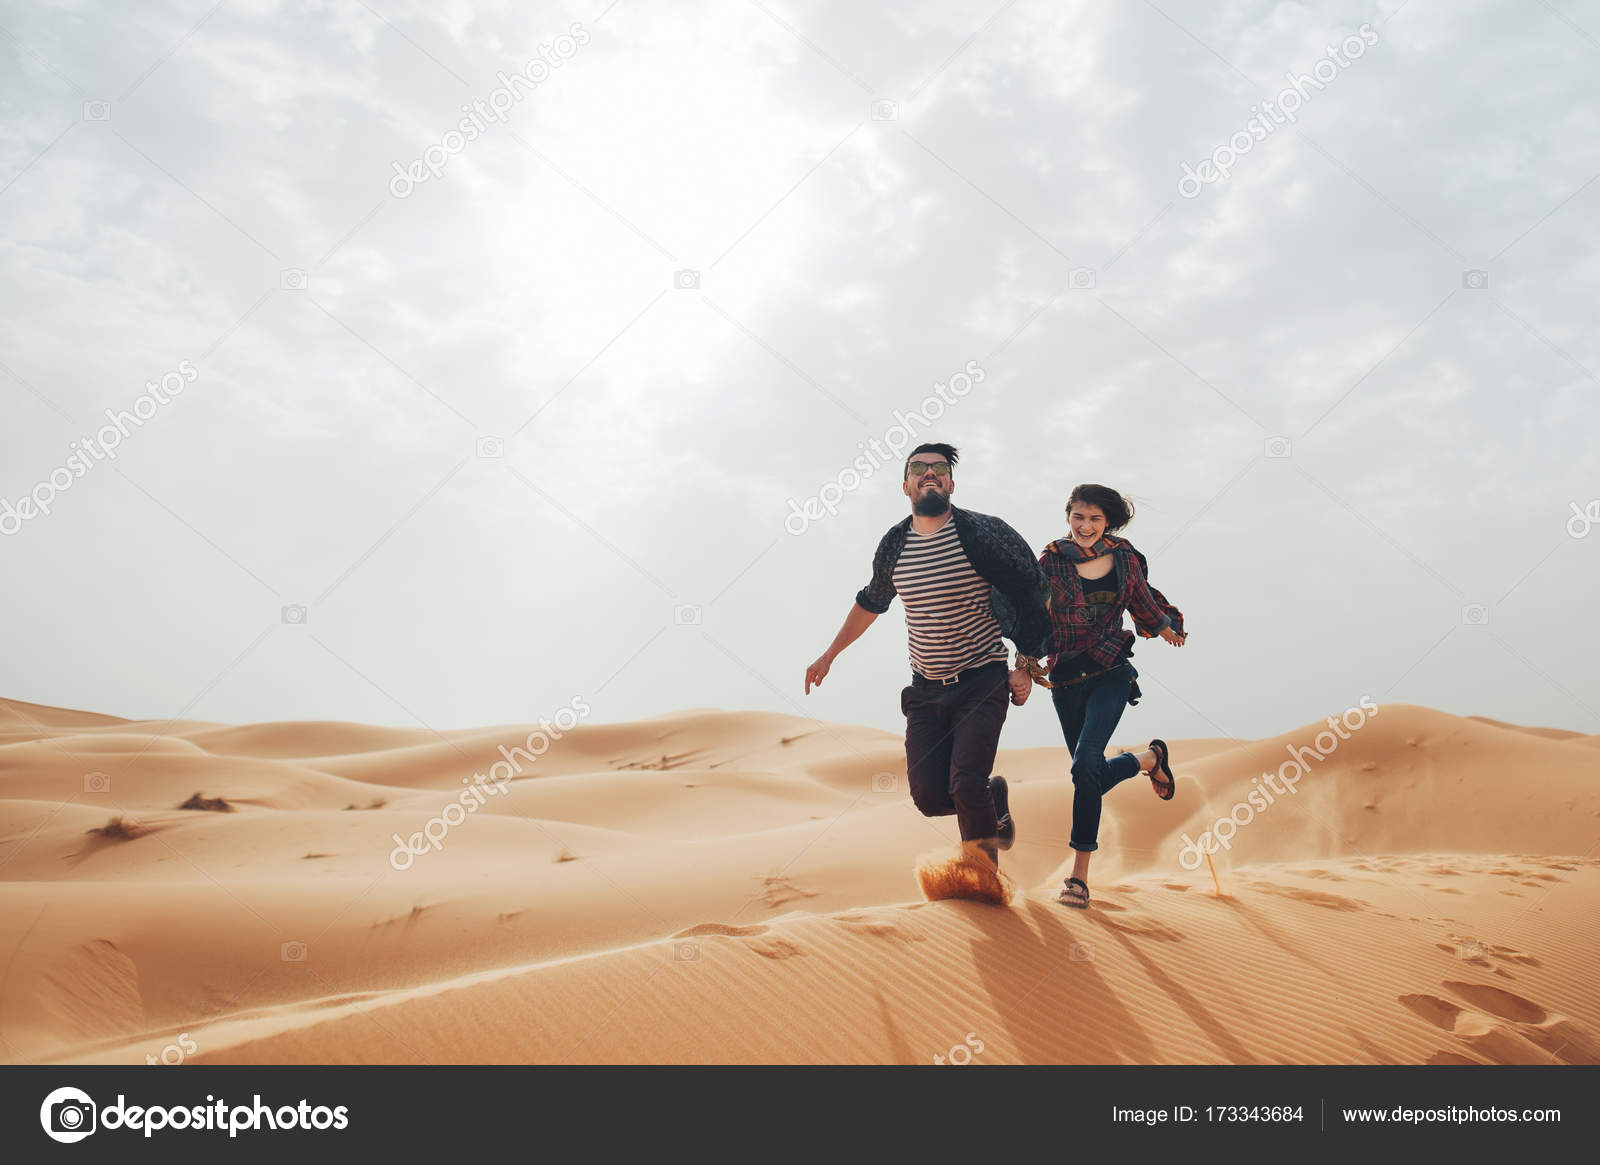 Image of: Camel Ride Couple Of Travelers In Desert Sahara Stock Image Depositphotos Couple Of Travelers In Desert Sahara Stock Photo Ladanivskyyo